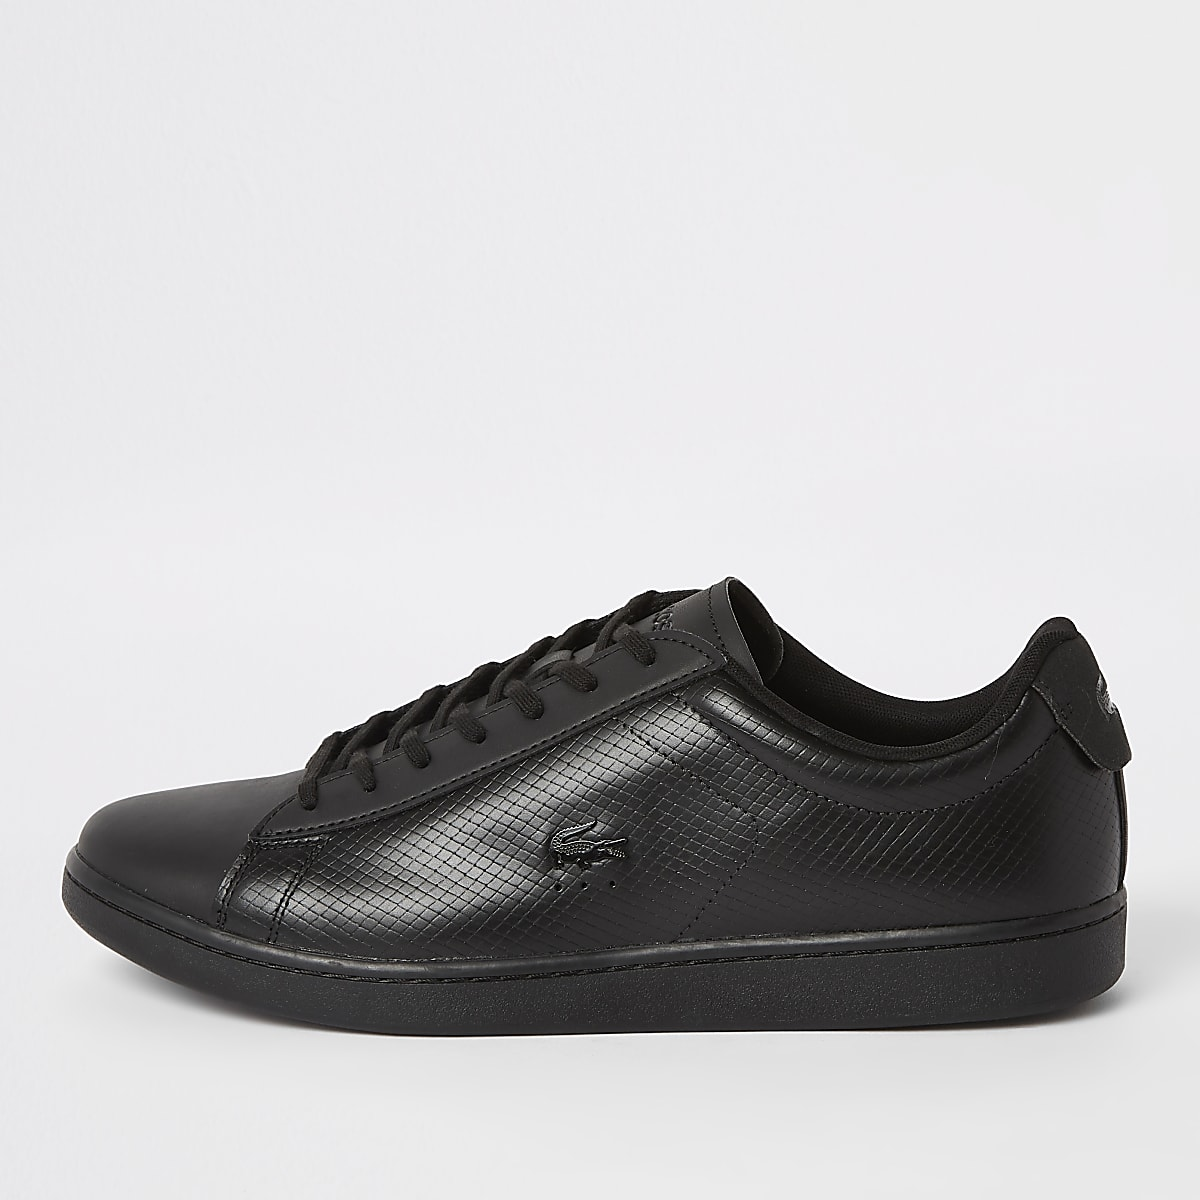 a9855c490 Lacoste black leather lace-up trainers - Trainers - Shoes   Boots - men